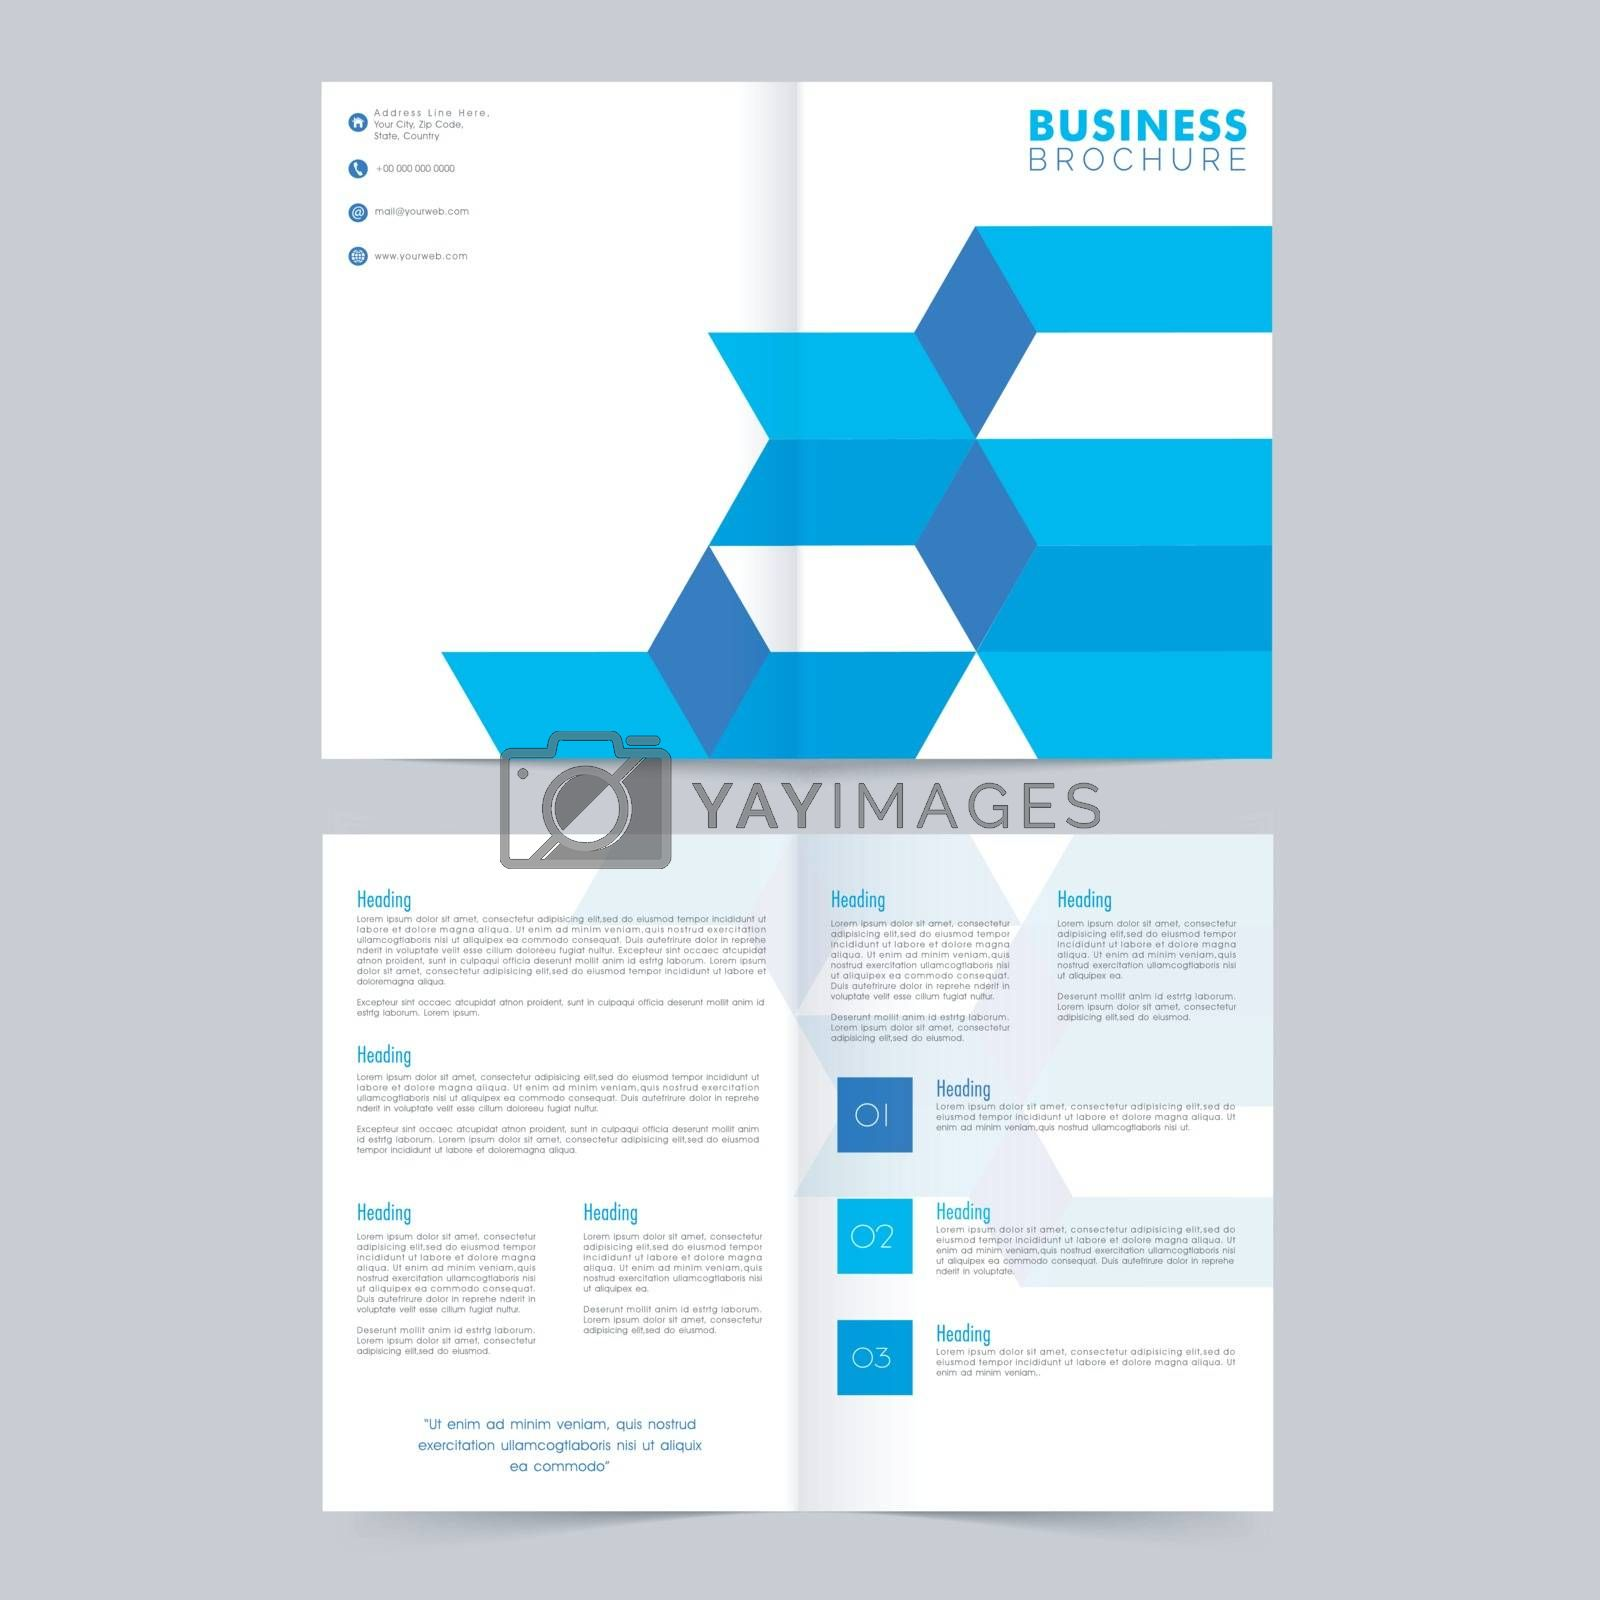 Professional Business Brochure with blue abstract design.